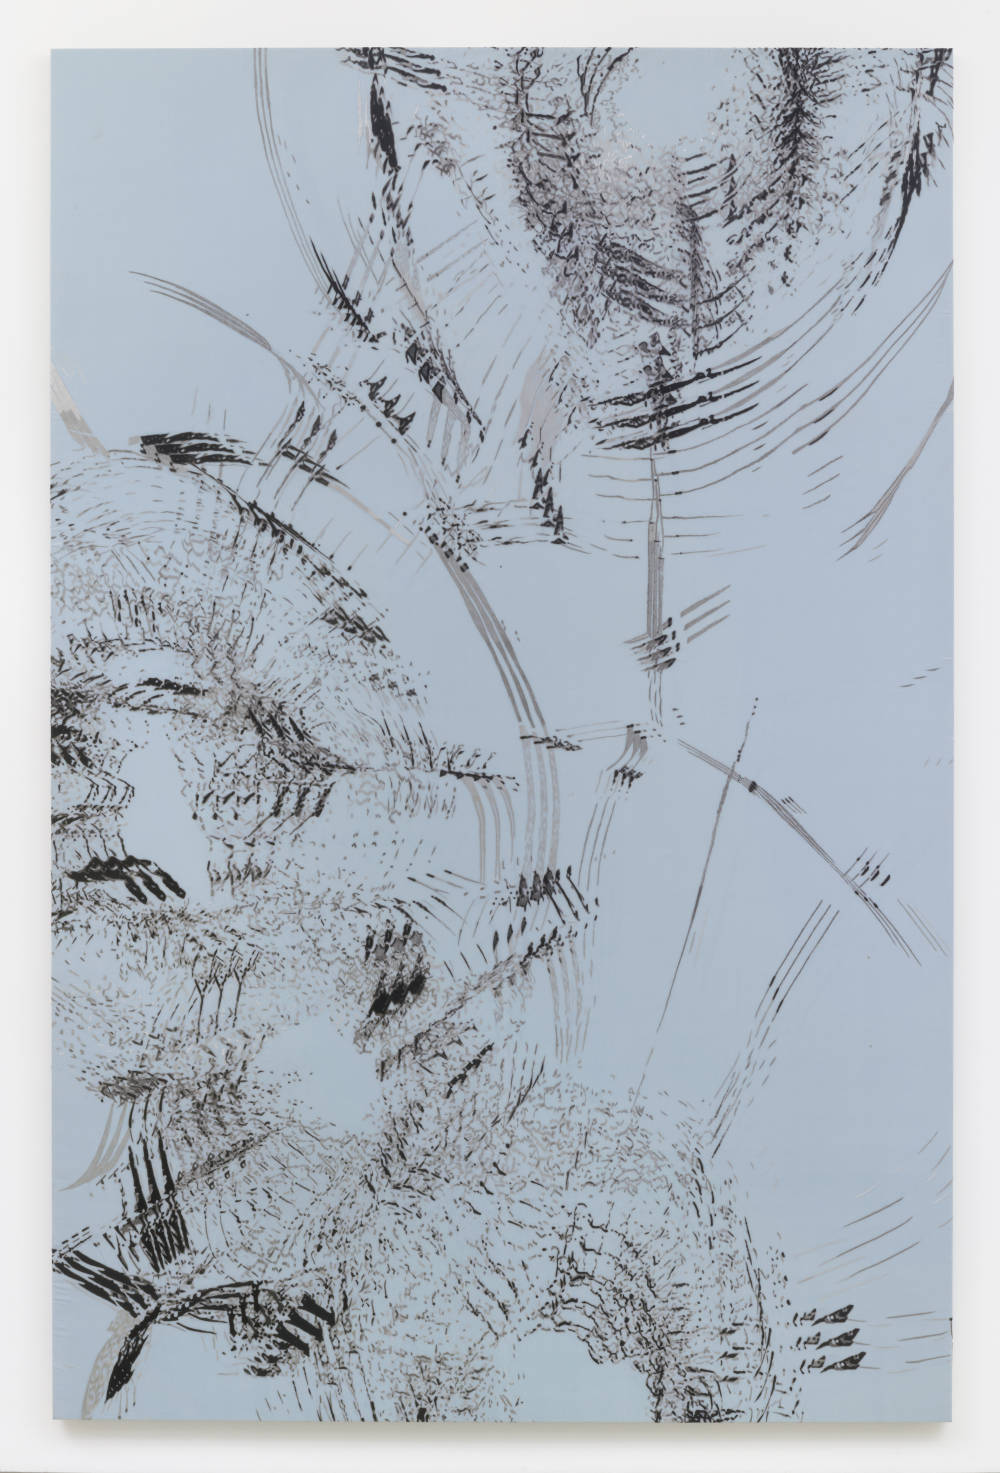 Zhao Zhao, Constellation 8, 2019. Embroidery on silk 117.32 x 77.16 inches (298 x 196 cm) Courtesy of the artist and Roberts Projects, Los Angeles, California